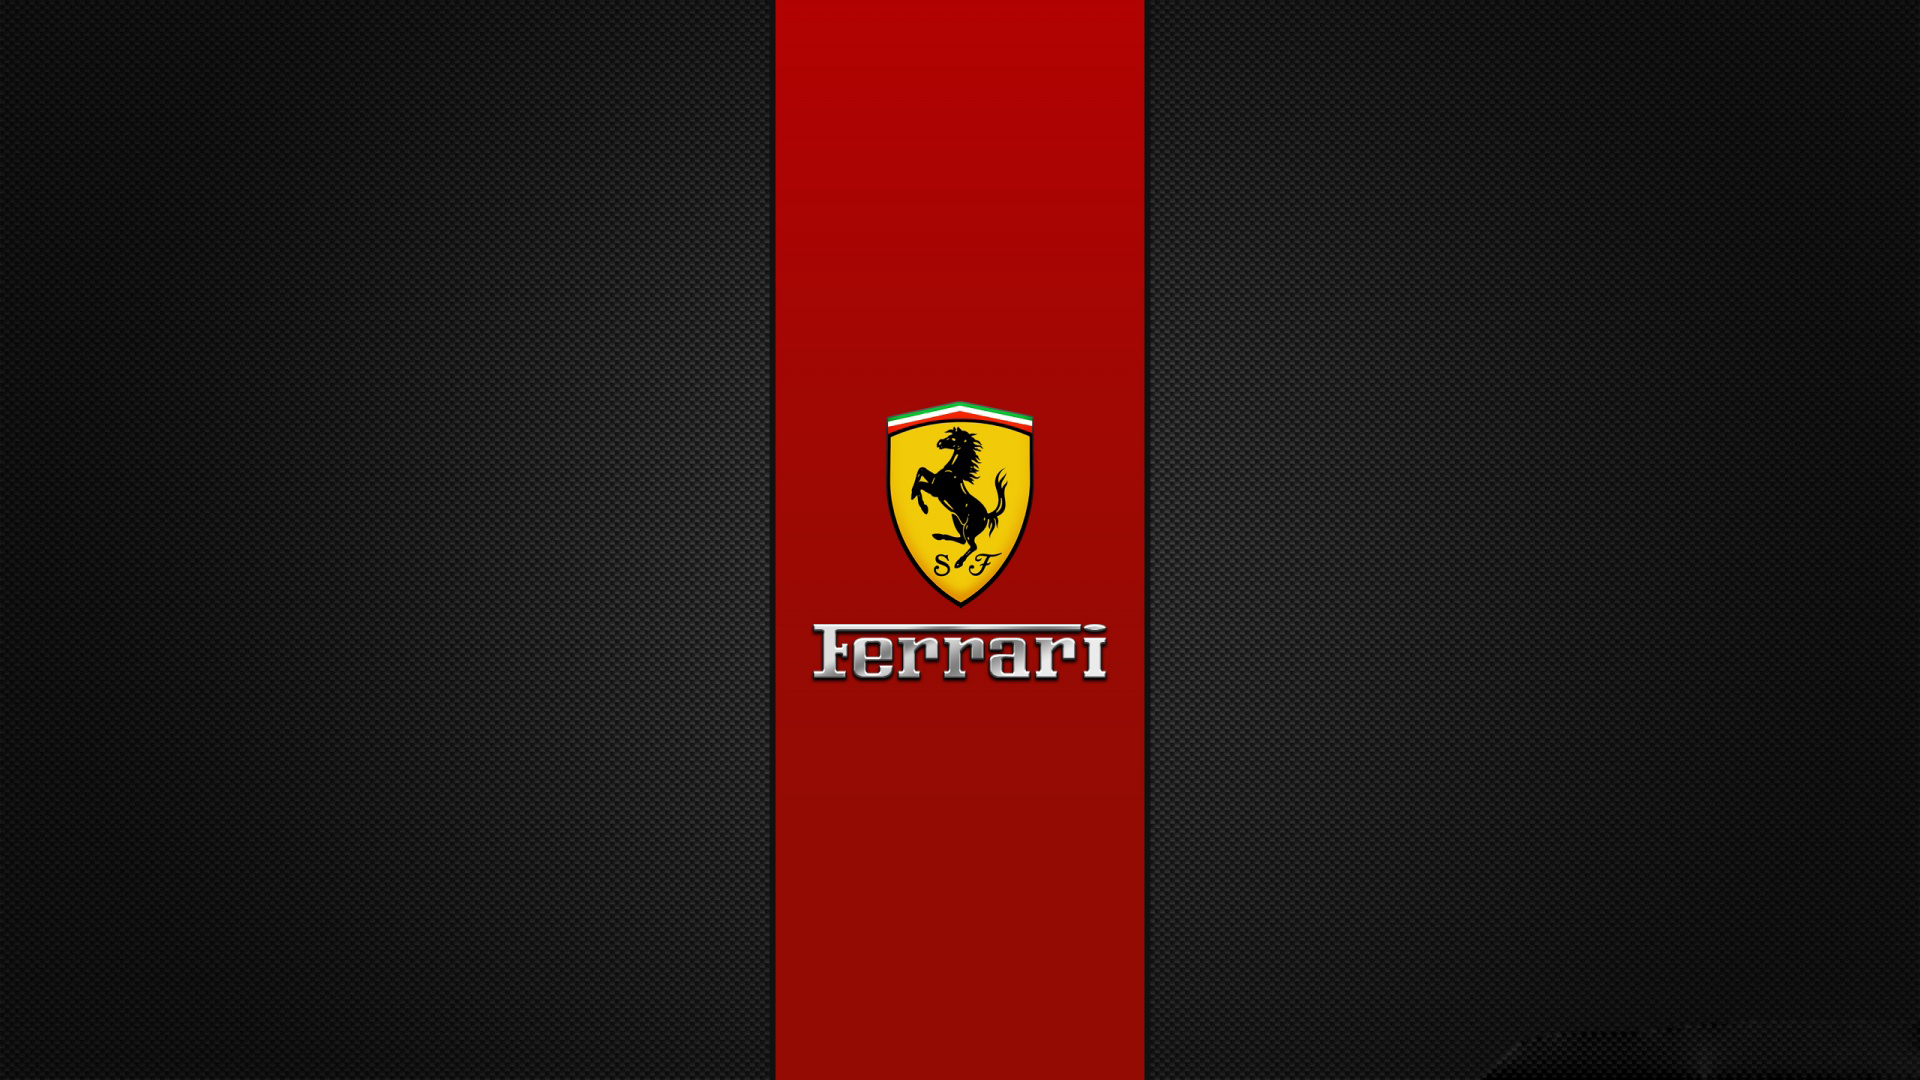 Ferrari logo wallpapers wallpaper cool collections of ferrari logo wallpapers for desktop laptop and mobiles here you can download more than 5 million photography collections uploaded by buycottarizona Choice Image